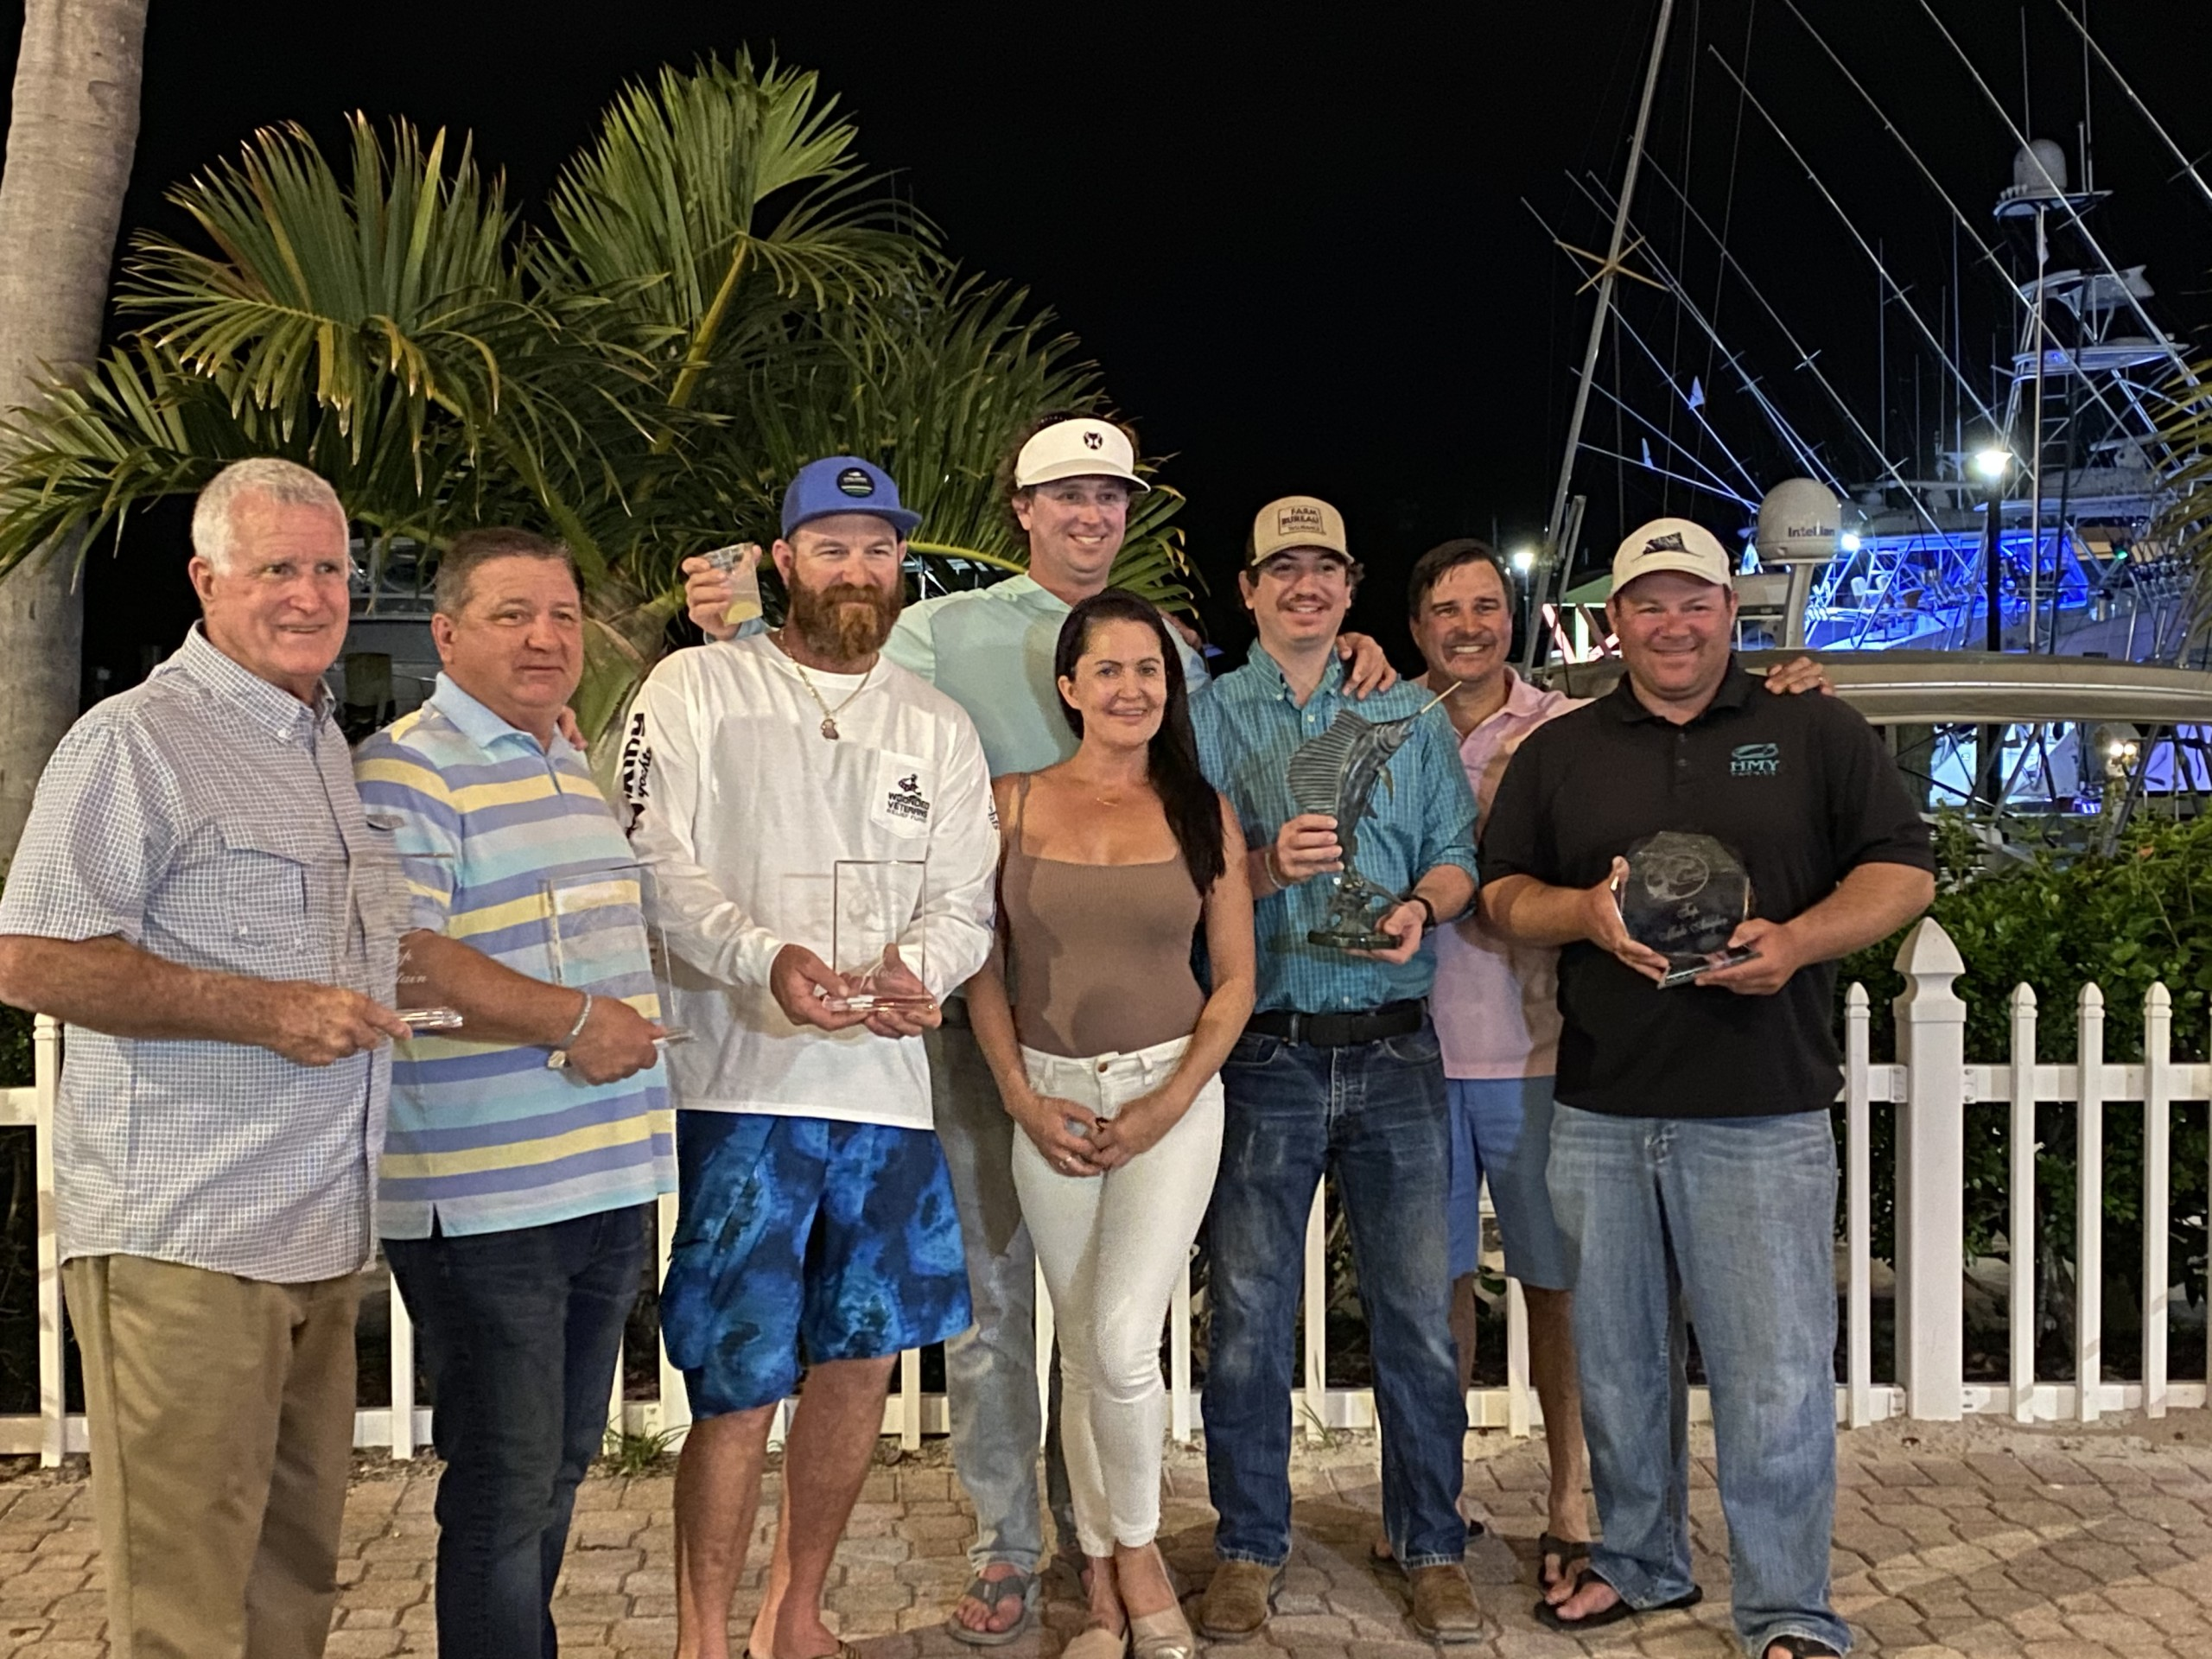 Champagne Lady, Ty Me Up and Southern Ground Take First in Florida Tournaments